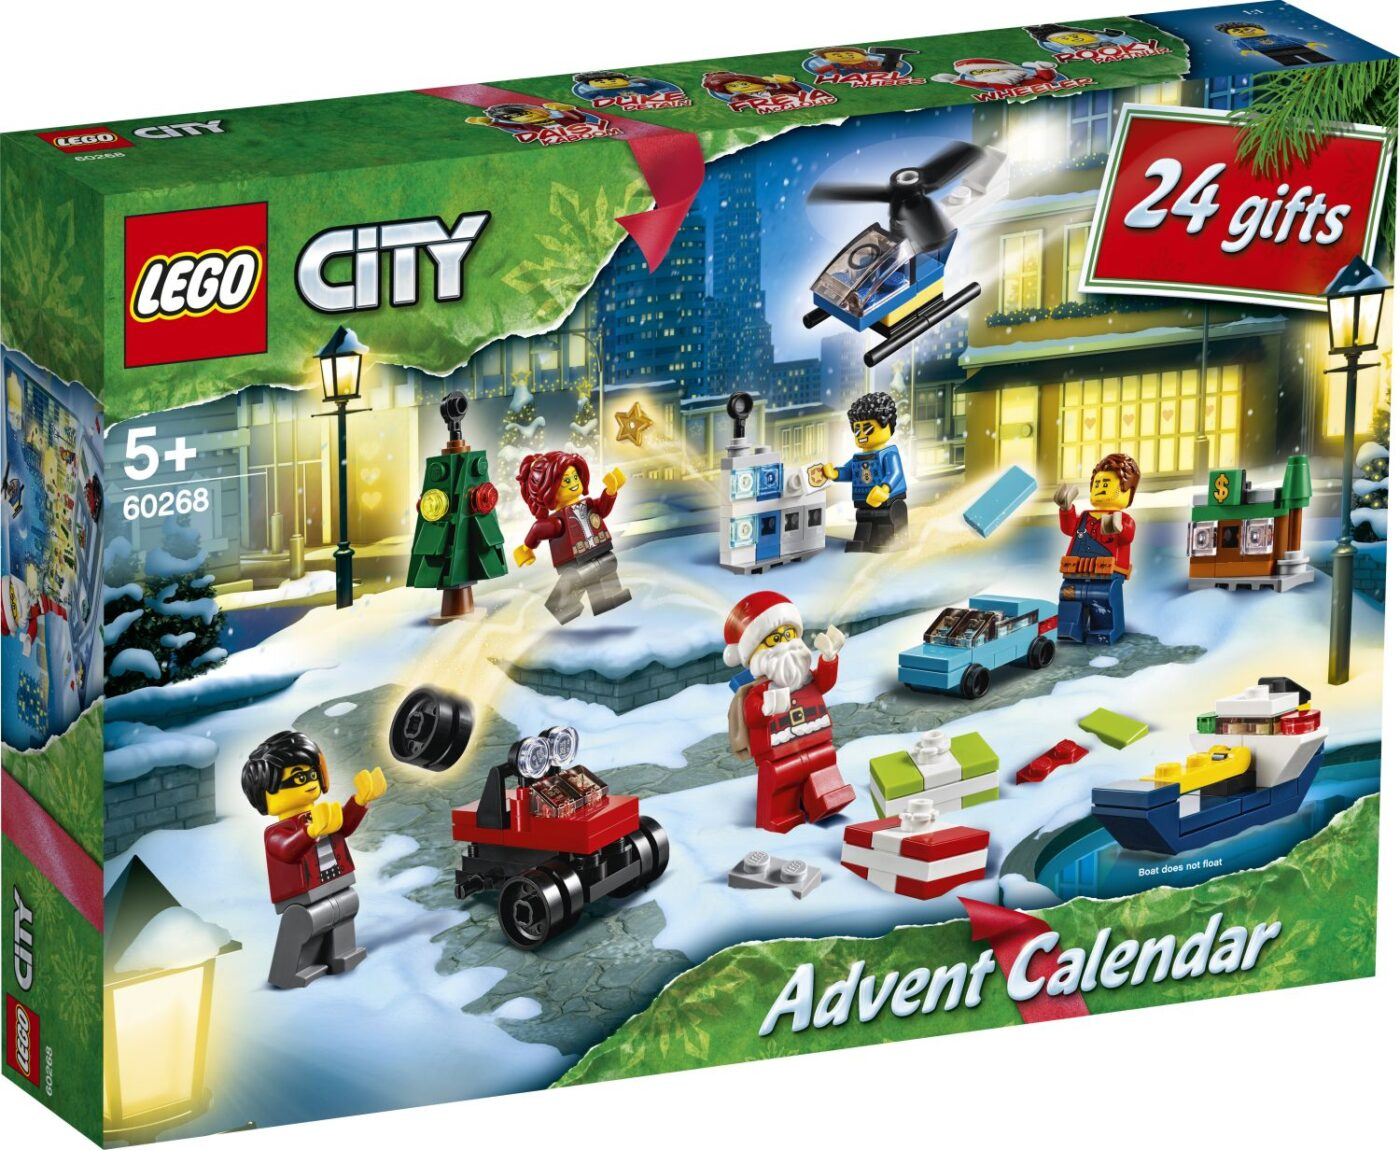 Christmas 2020 Lego Lego City Town 2020 Advent Calendar Available Now!   hello